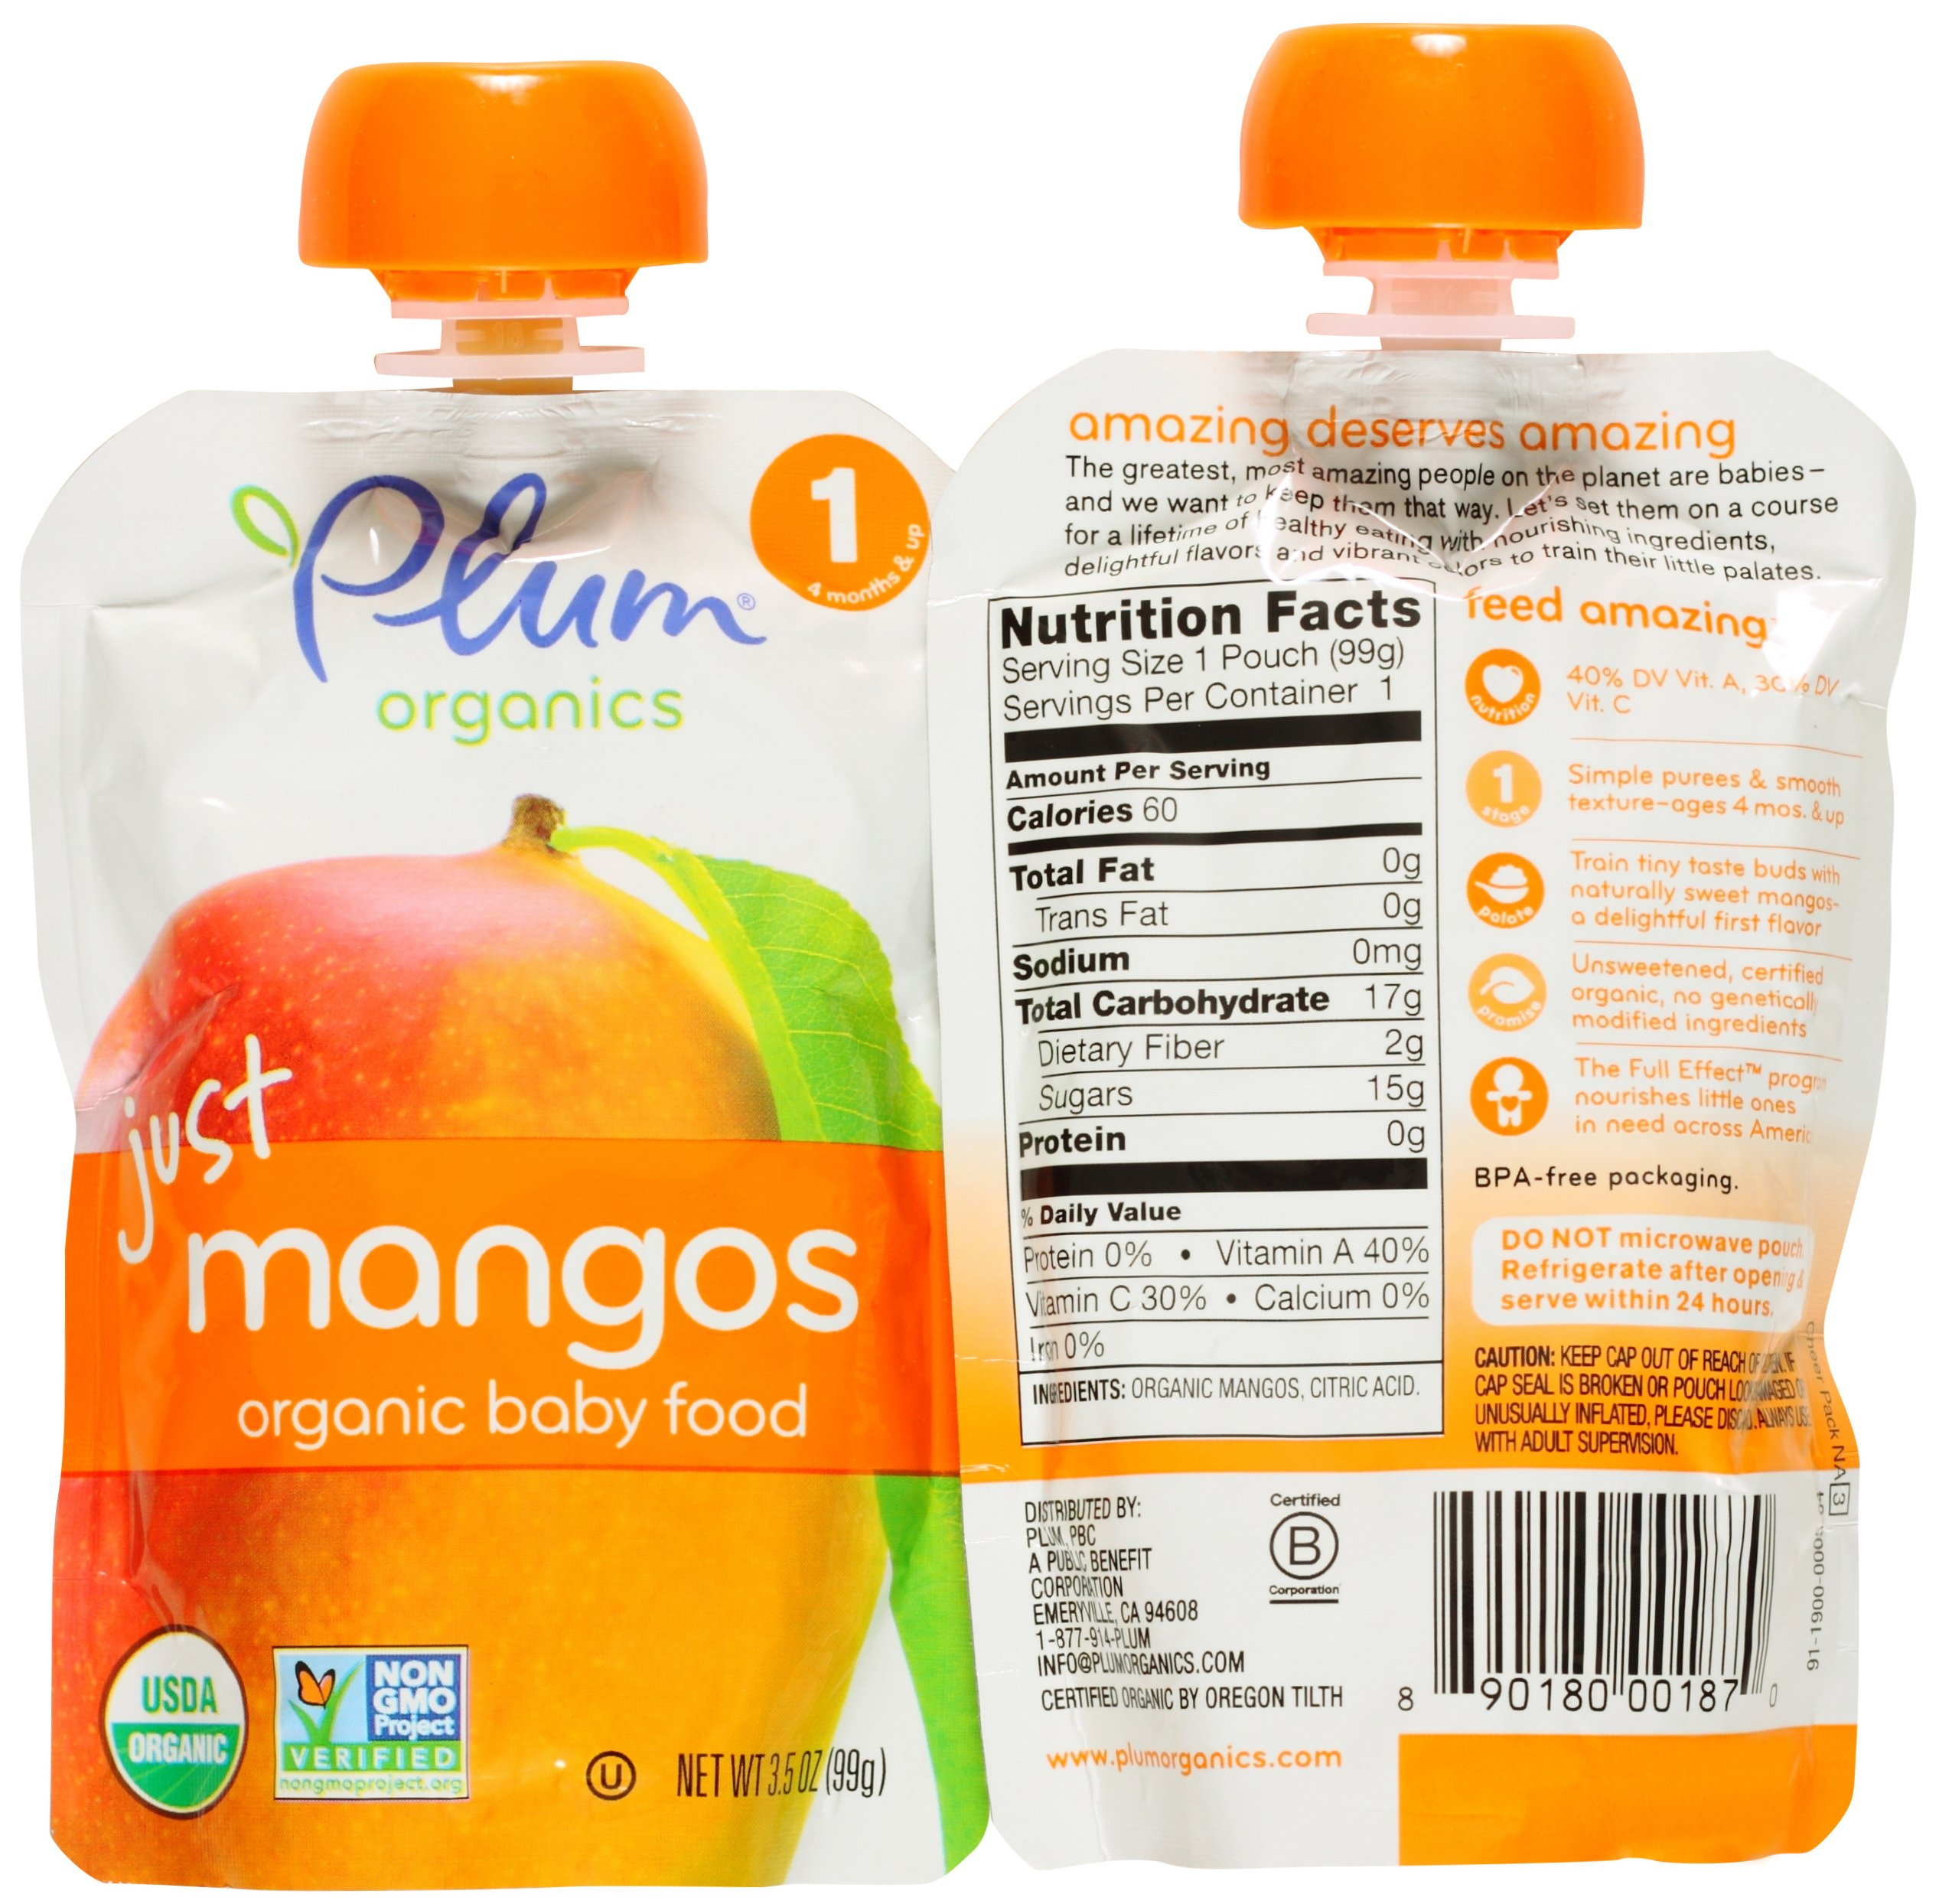 Plum Organics Stage 1 Just Fruit & Veggies Variety Pouch Bundle: (2) Just Prunes 3.5oz, (2) Just Mangos 3.5oz, (2) Just Sweet Potato 3oz, and (2) Just Peaches 3.5oz (8 Pack Total) by Plum Organics (Image #3)